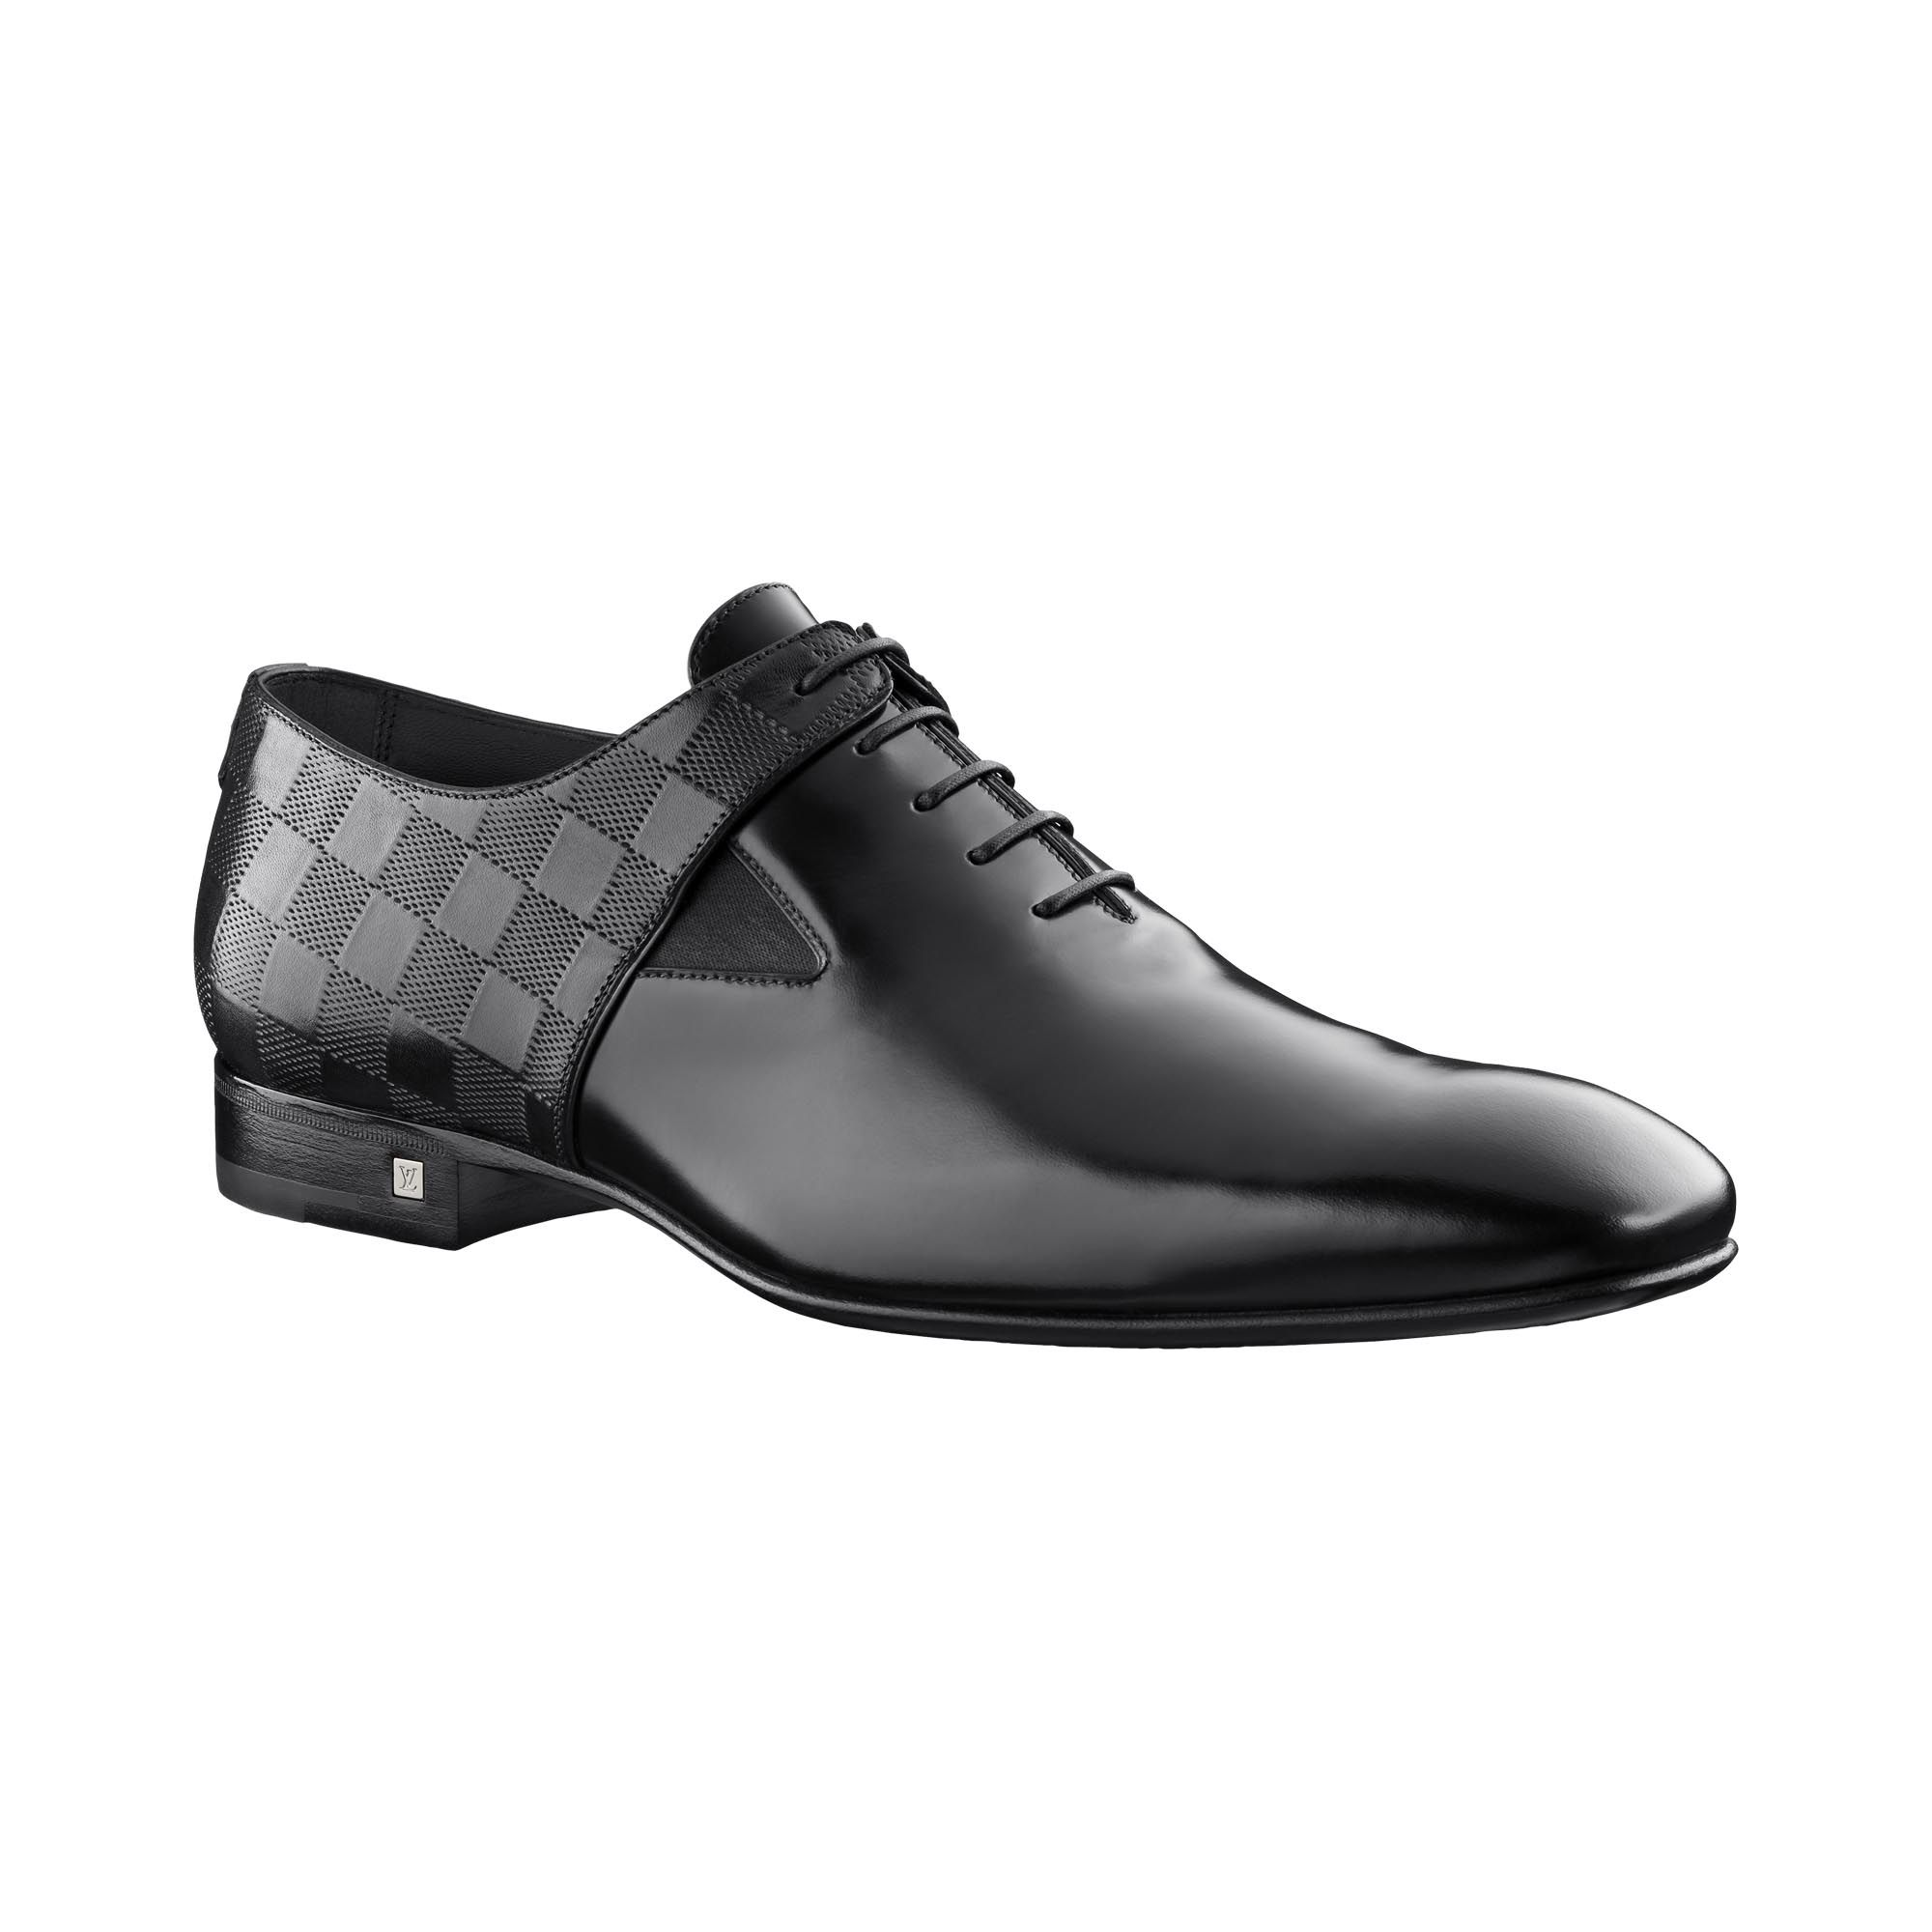 2a3cc79e901d7 Louis Vuitton | Cool Men's Shoes | shoe ideas | Tuxedo shoes, Shoes ...